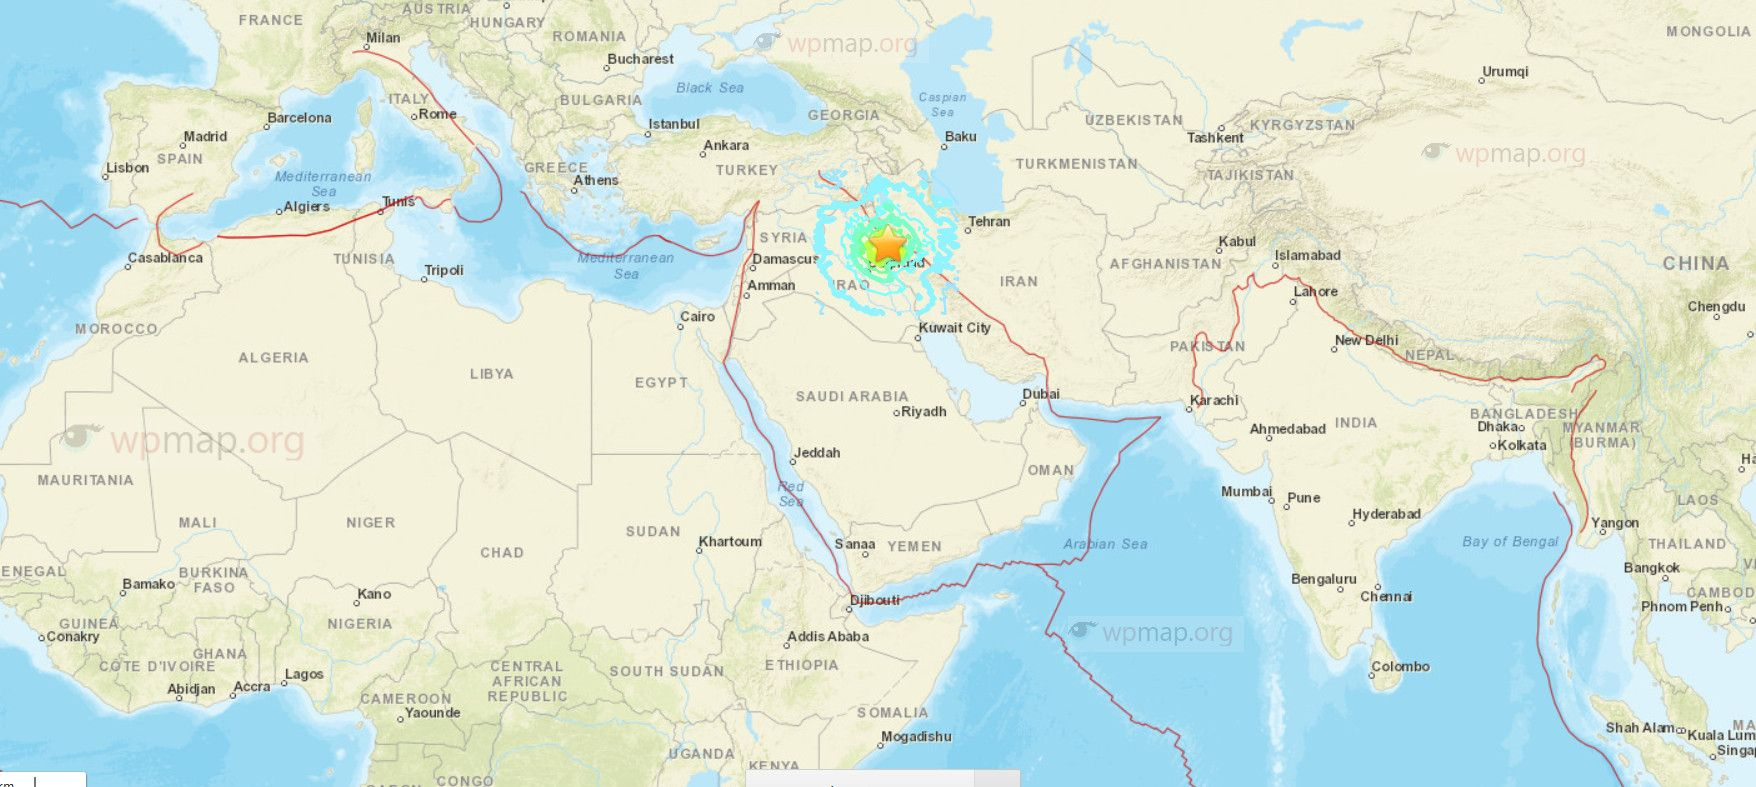 Sulaymaniyah earthquake map maps pinterest earthquake map sulaymaniyah earthquake map a huge earthquake magnitude has struck near the iraniraq border and been felt as far away as turkey kuwait and the gumiabroncs Image collections